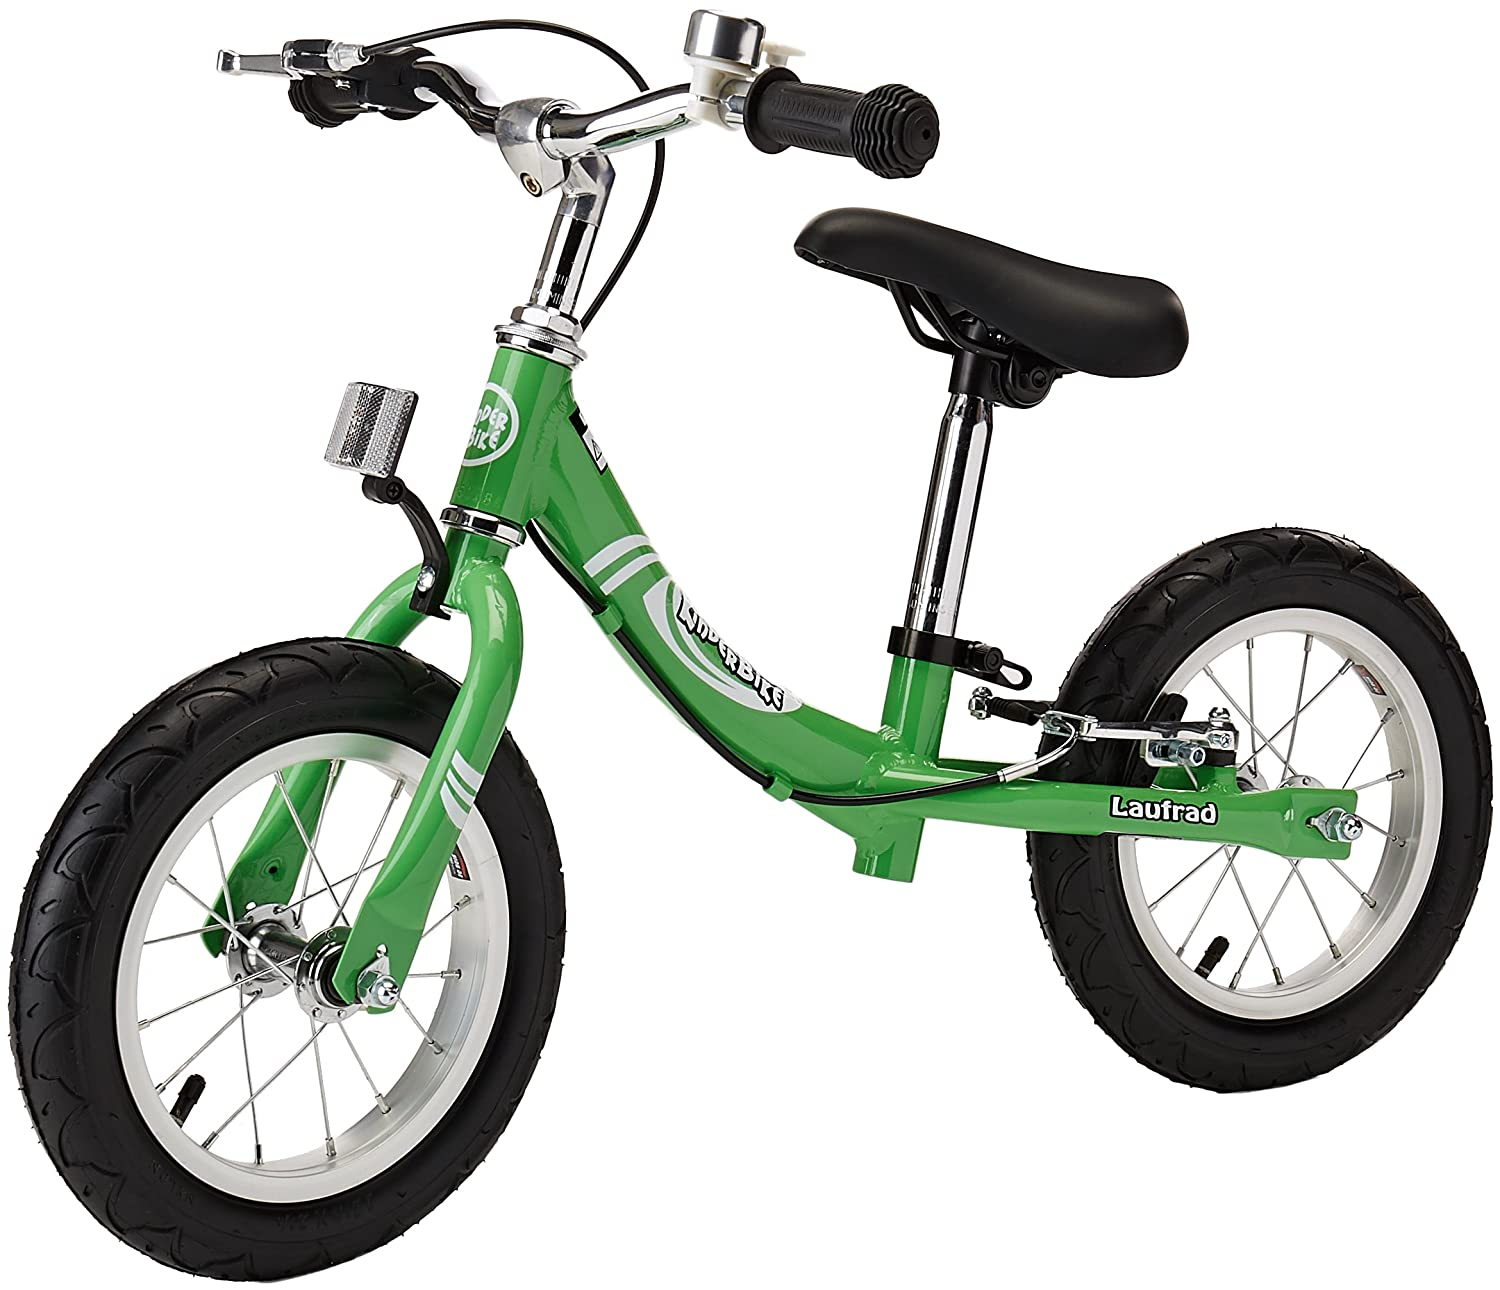 KinderBike Laufrad 2014 Bike, Green L1014GUS15